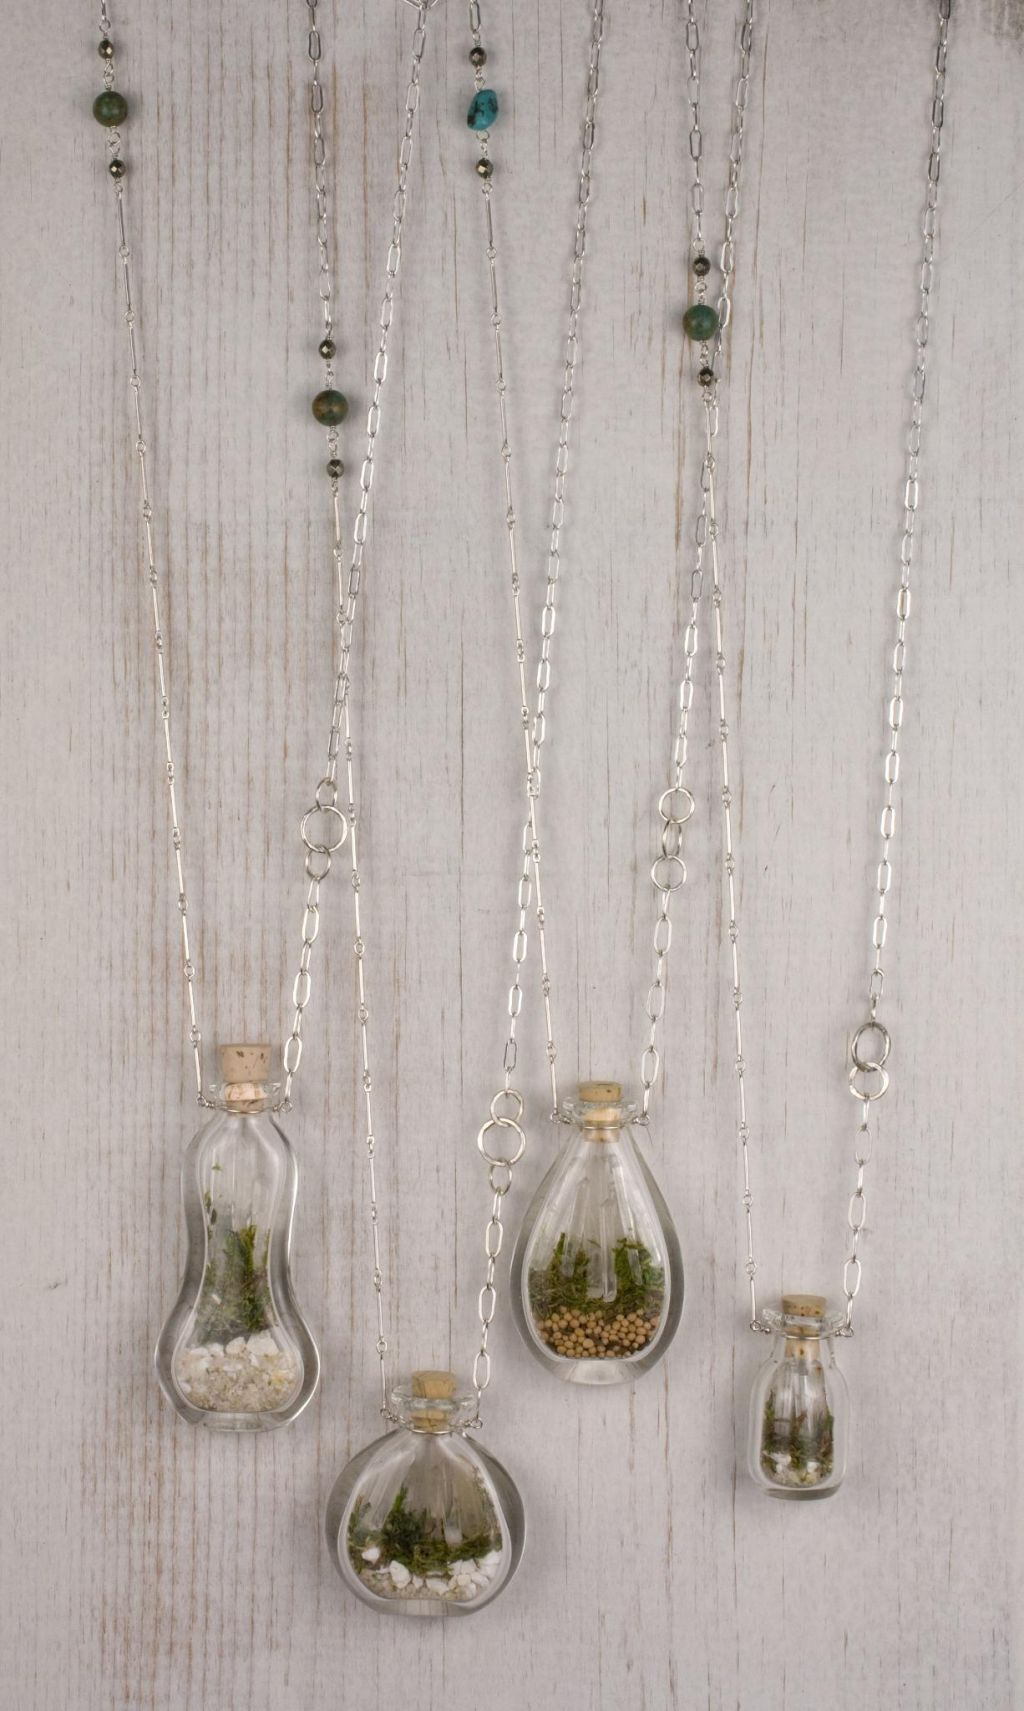 Terrarium necklaces by #SCAD alum Sarah Lewis, @shopSCAD $150 | WiSh ...